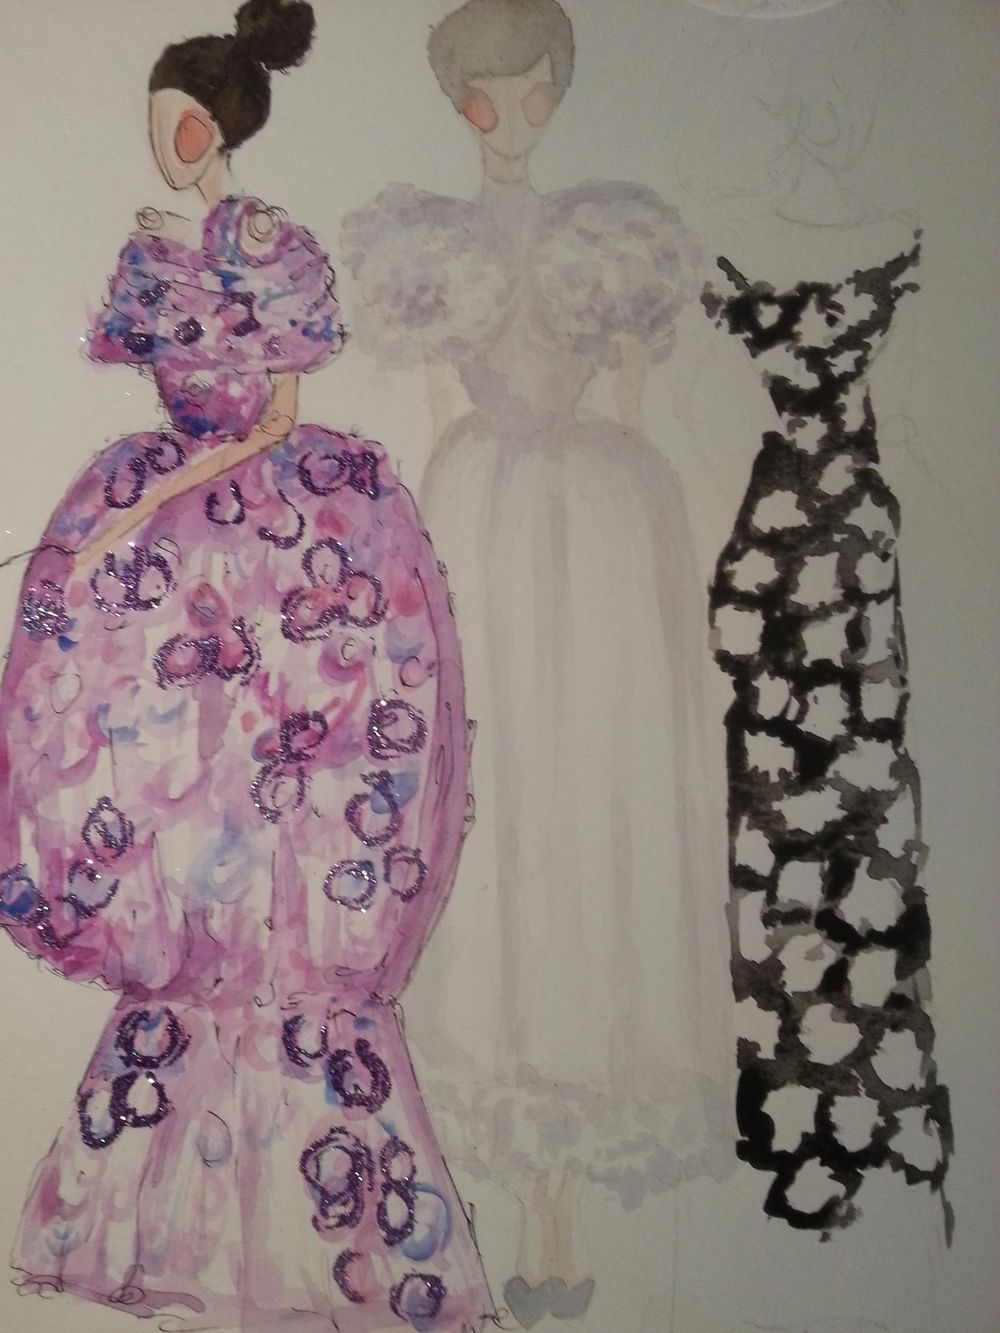 In Couture - image 10 - student project